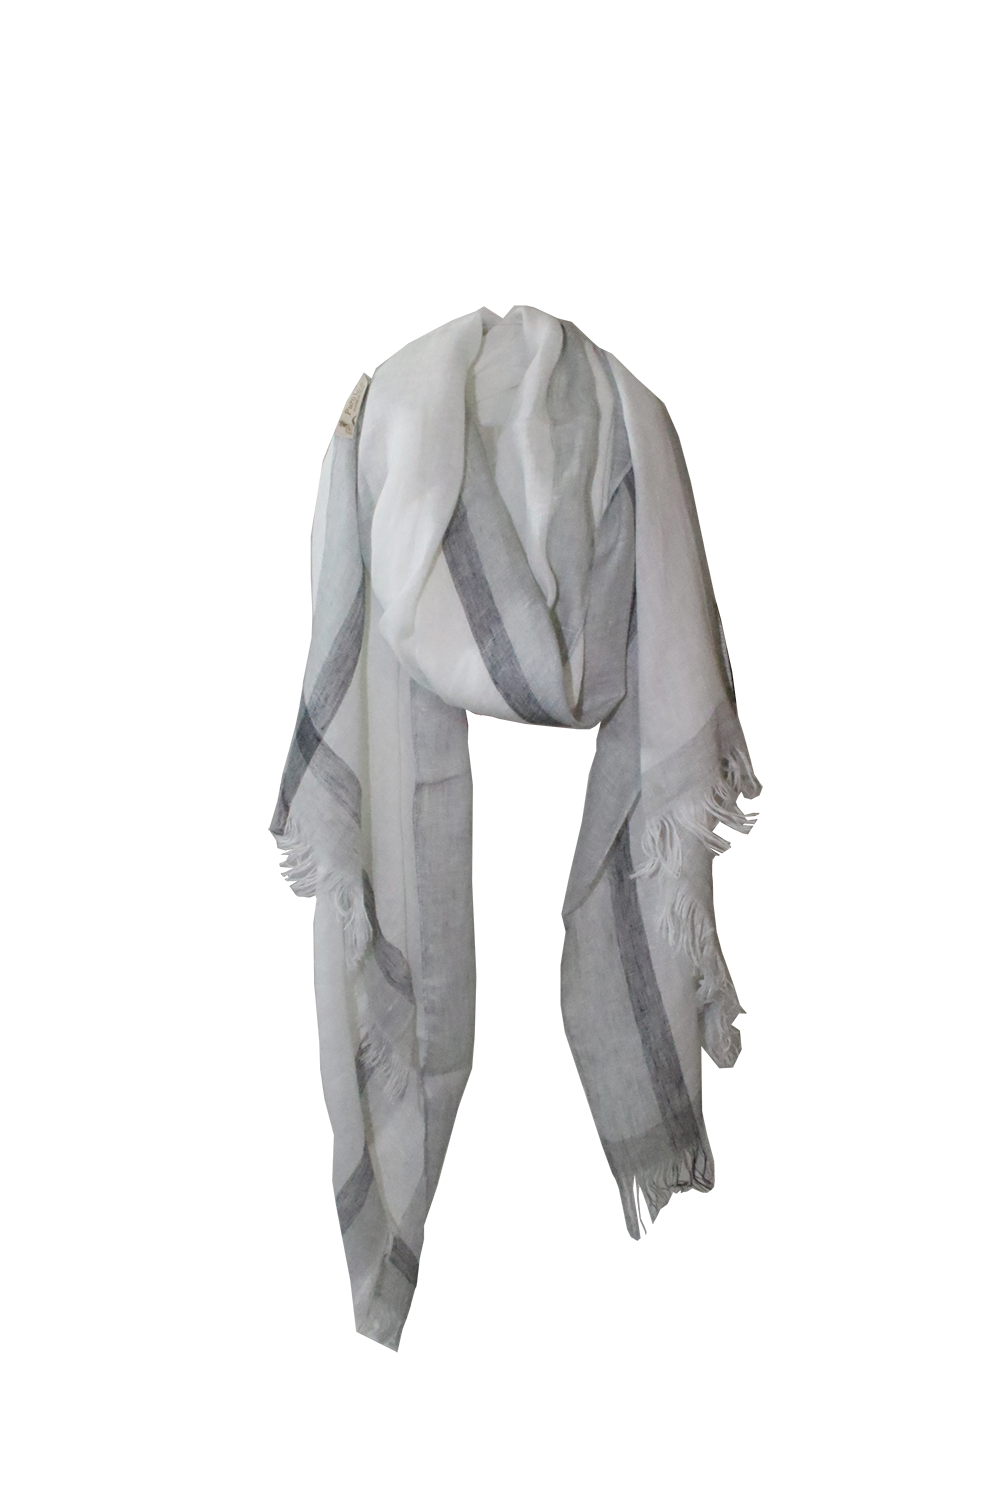 White scarf png. Linen big size vanity